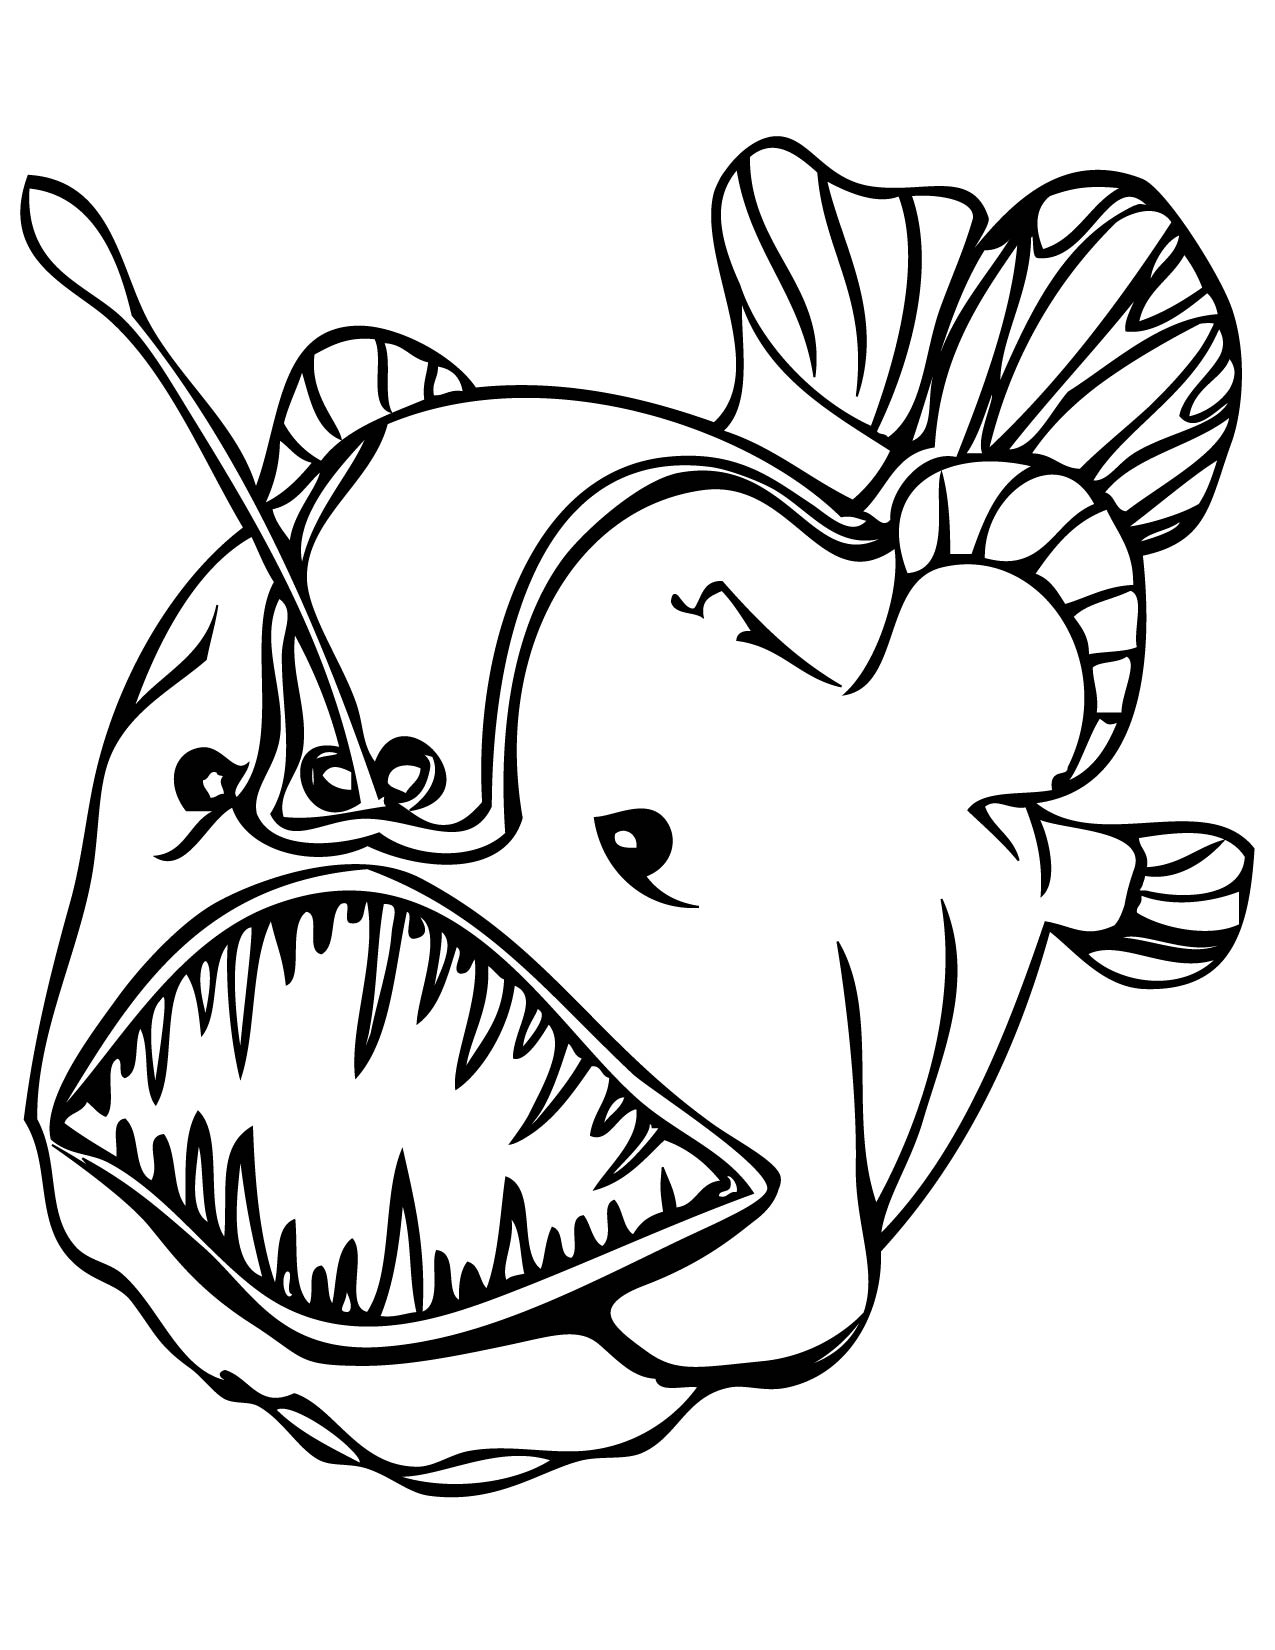 fanfin anglerfish coloring page handipoints